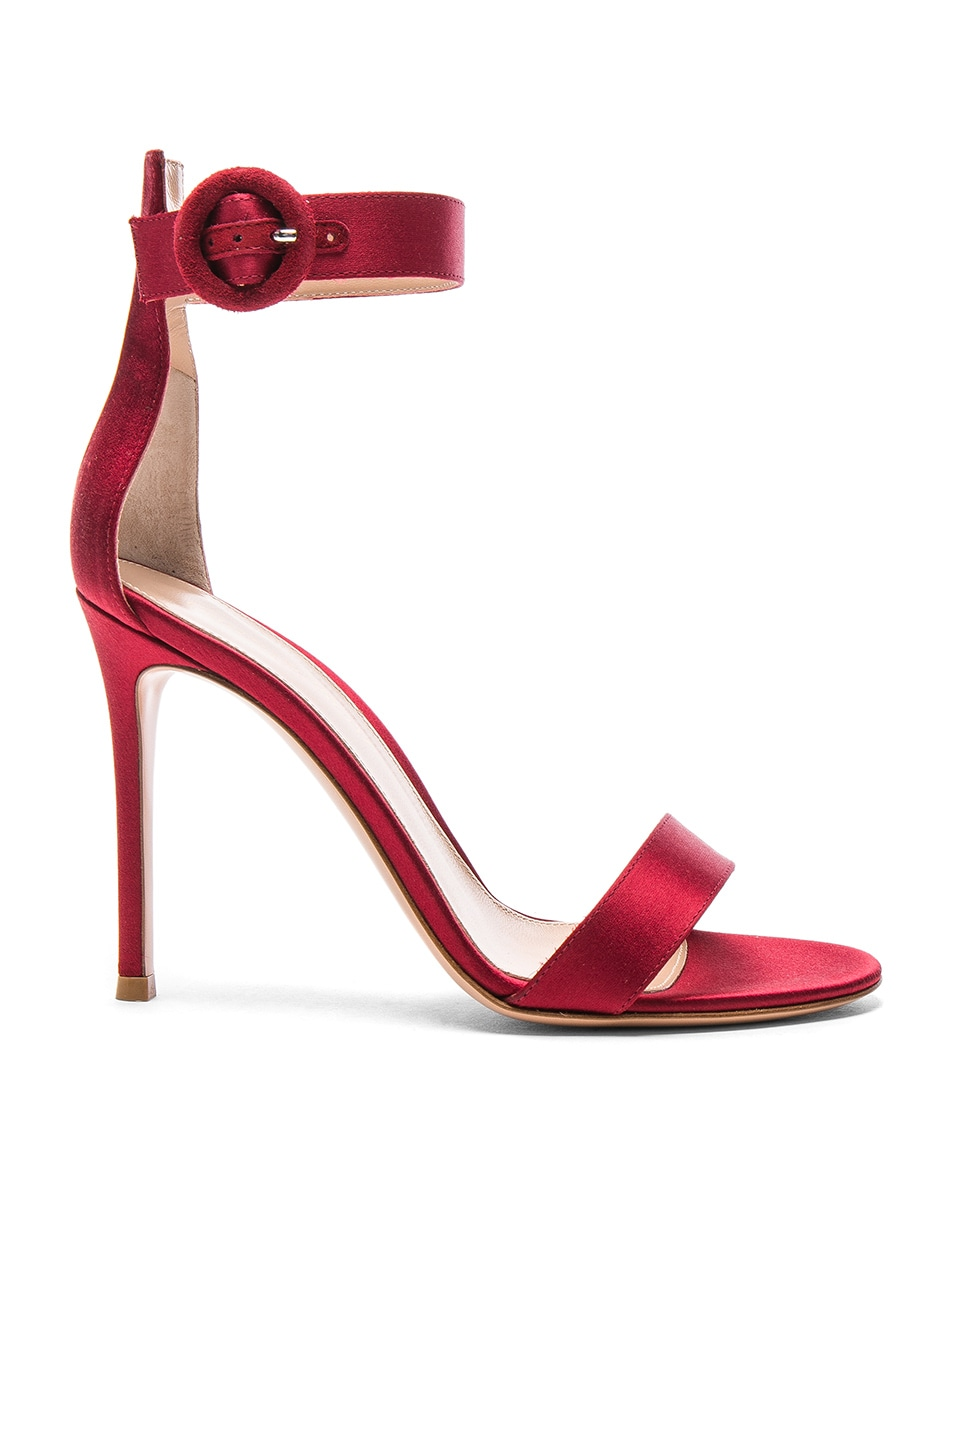 Gianvito Rossi Portofino Satin Sandals outlet Inexpensive clearance discount discount buy latest sale online sneakernews i6uOJlHSZ4